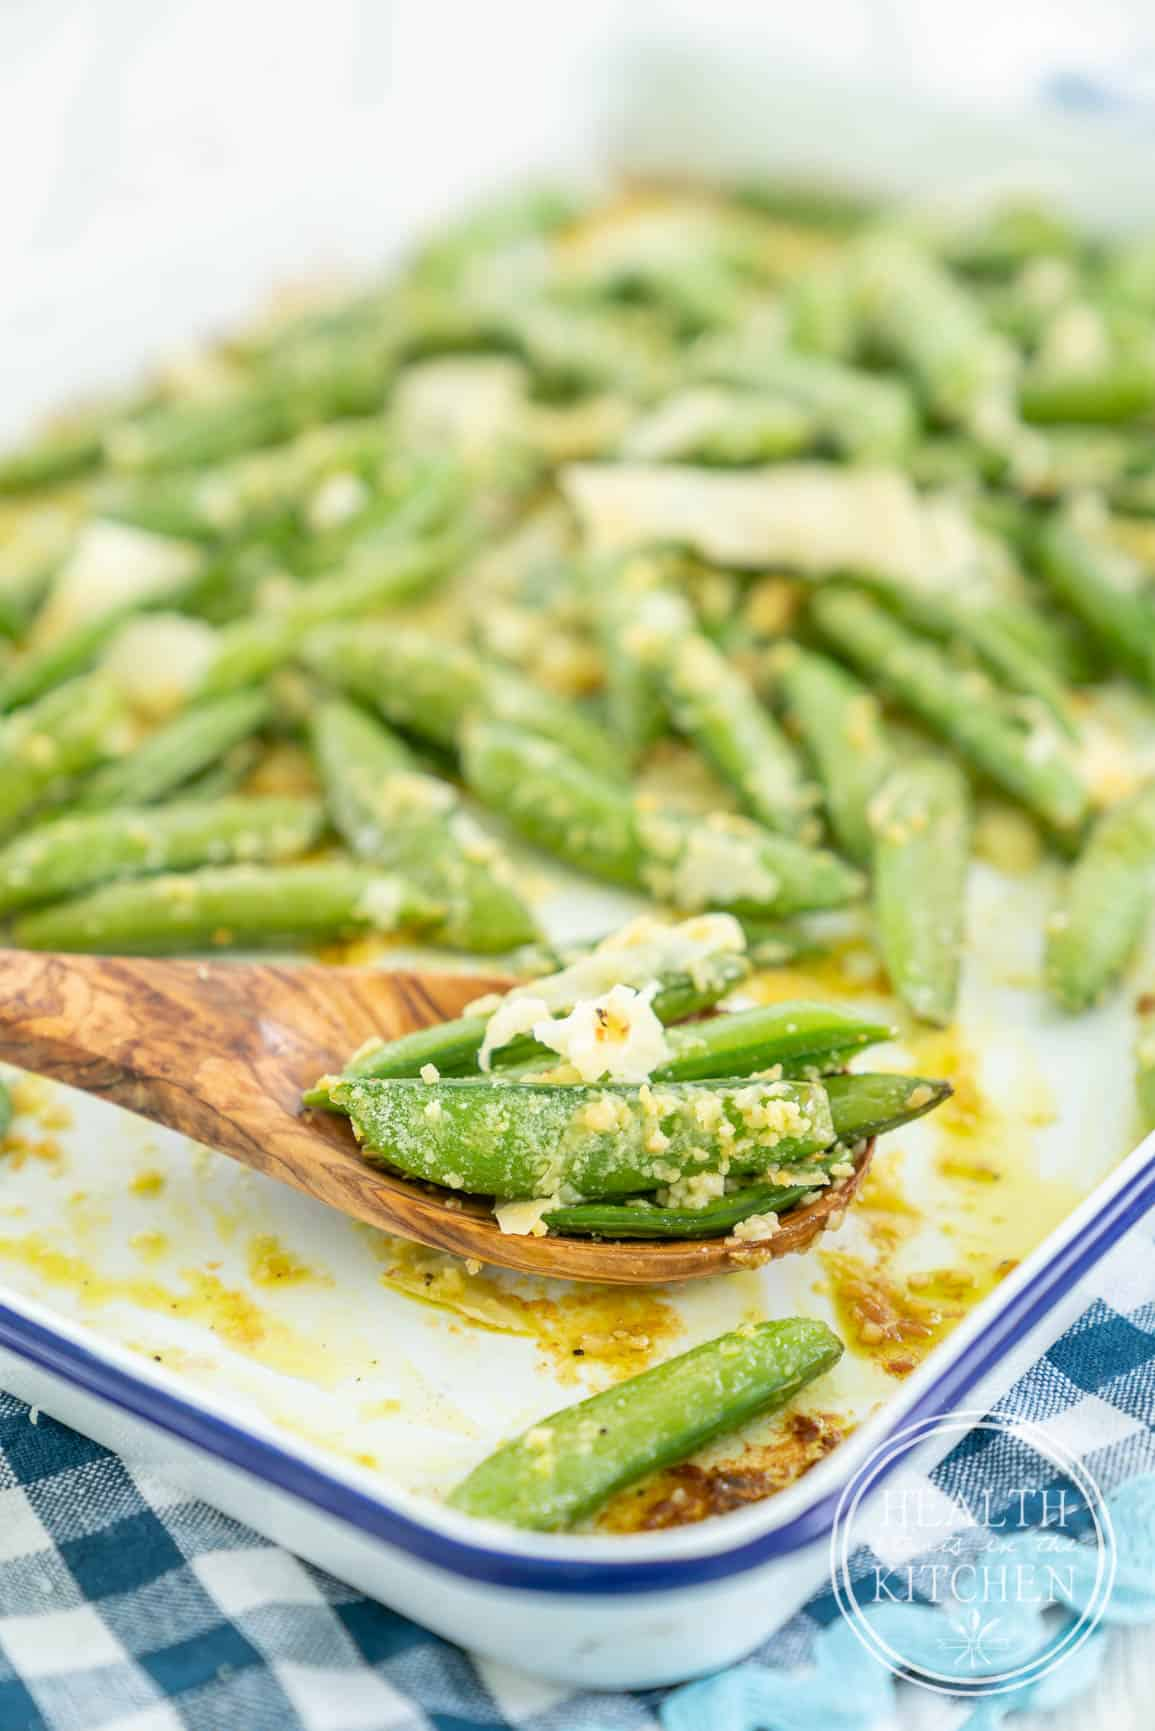 Parmesan Garlic Roasted Sugar Snap Peas - Low Carb